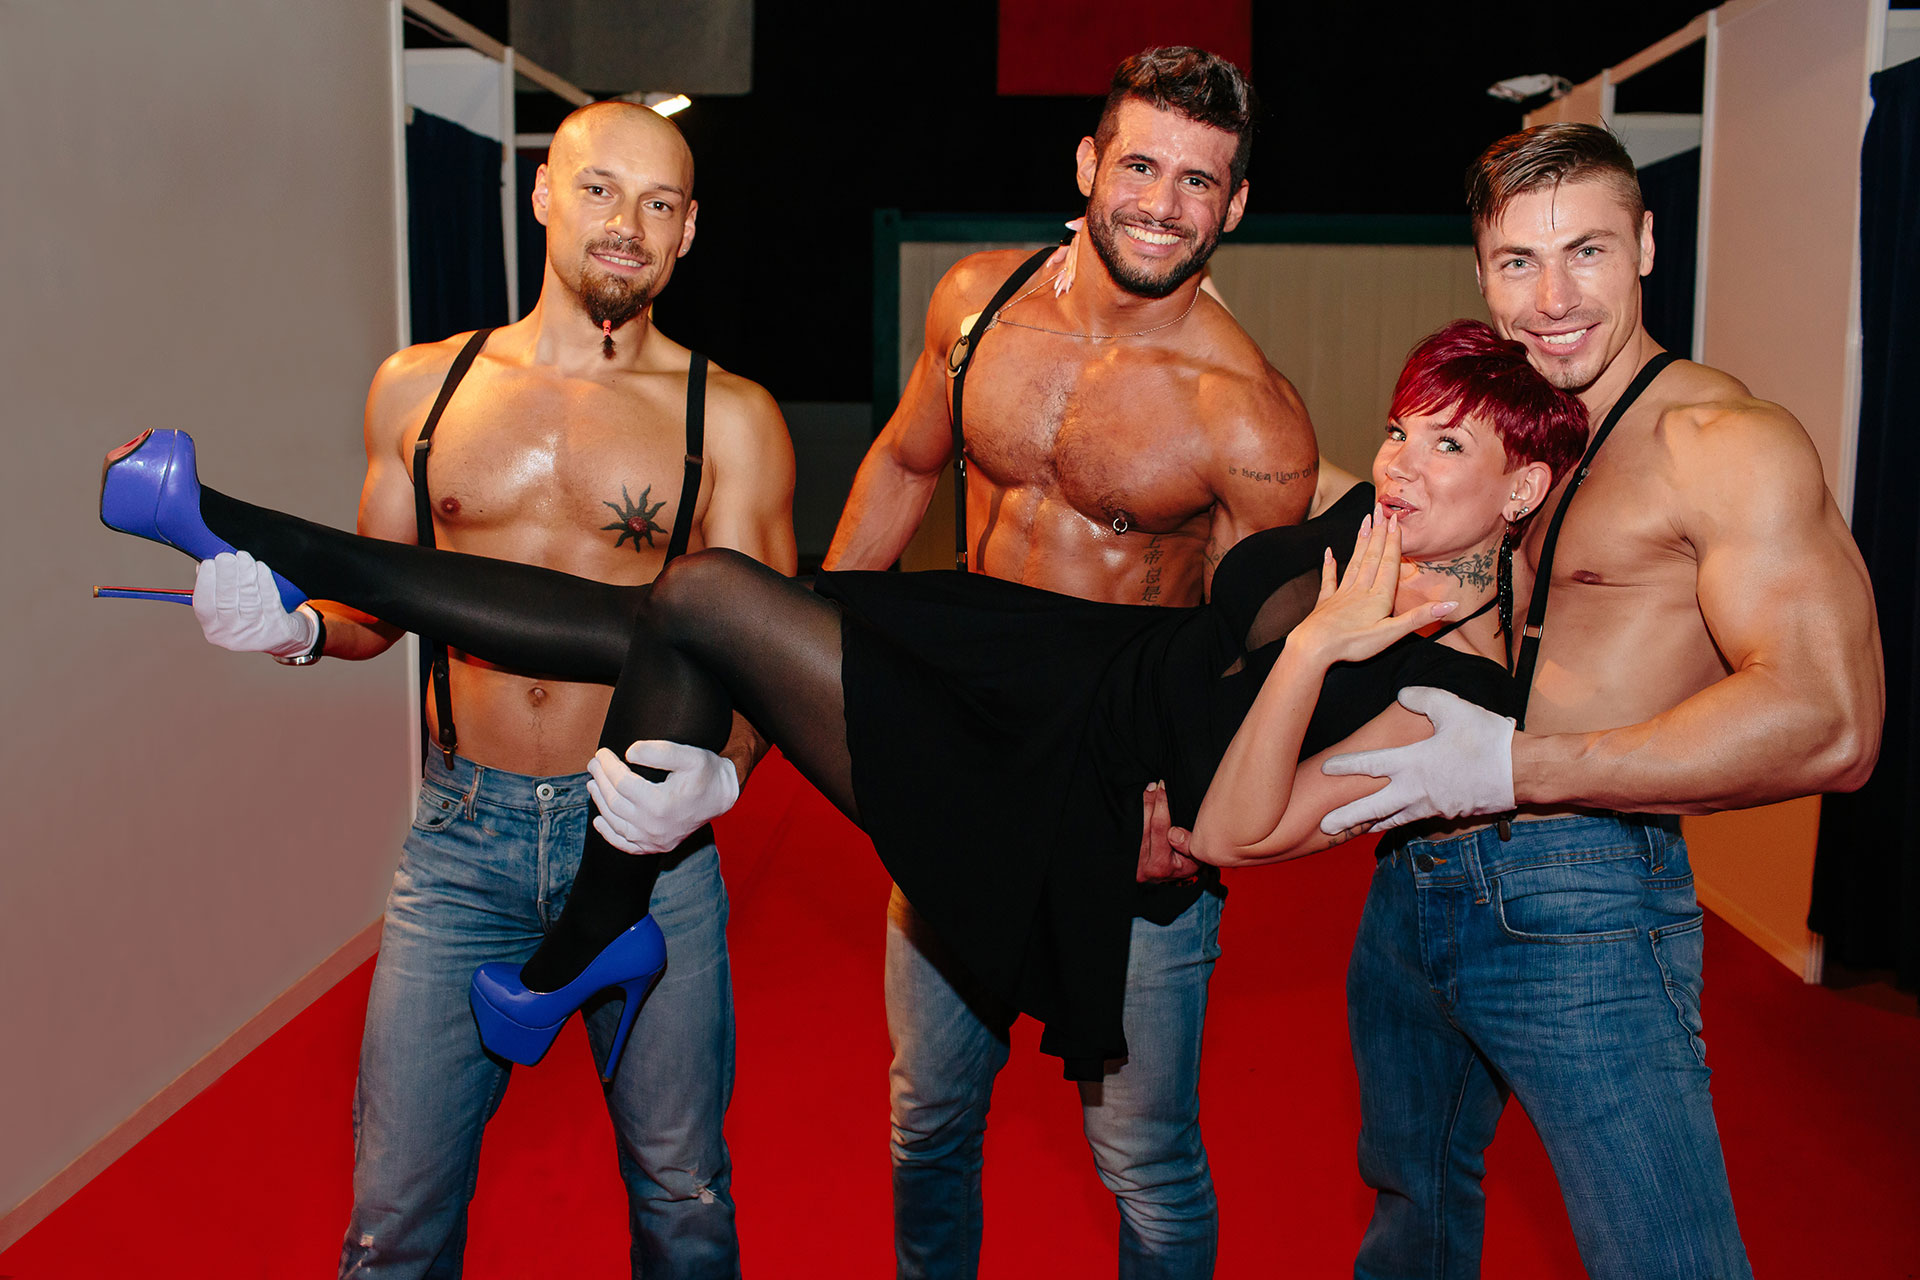 Absolute male strippers